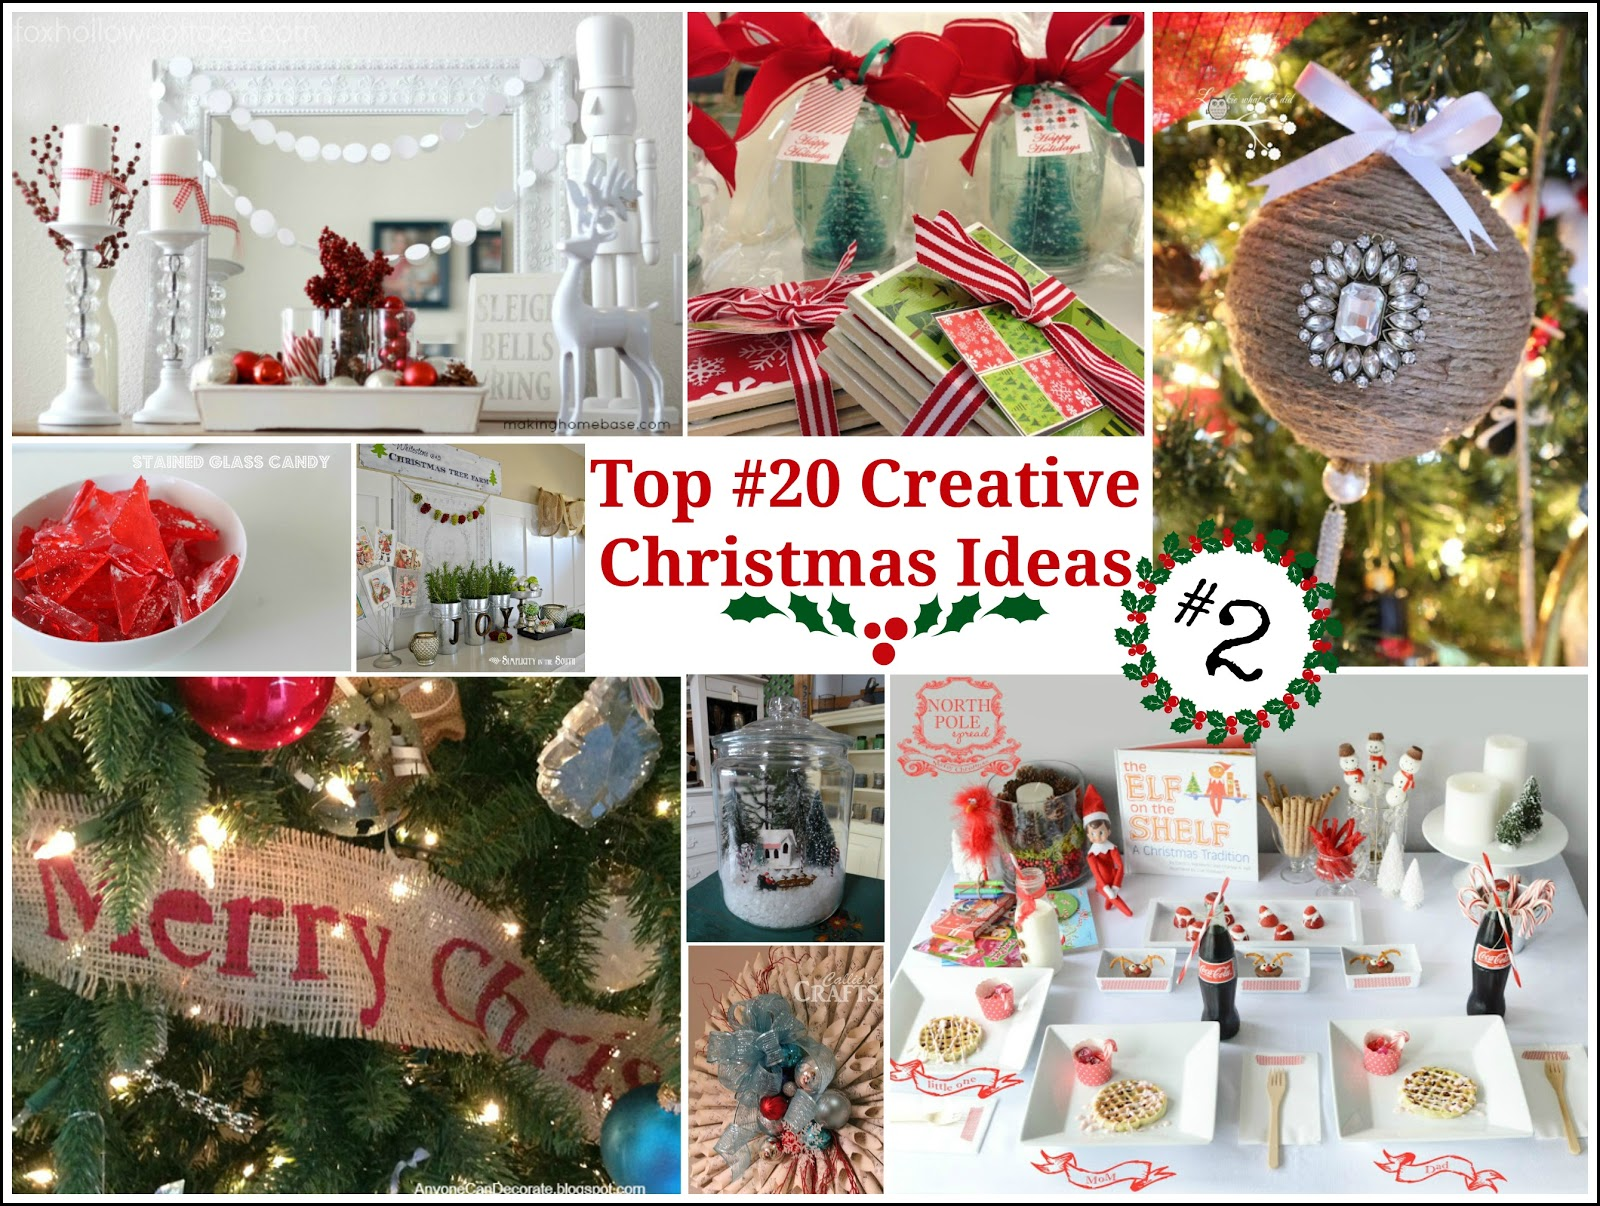 Top 20 Creative Christmas Ideas II - Fox Hollow Cottage